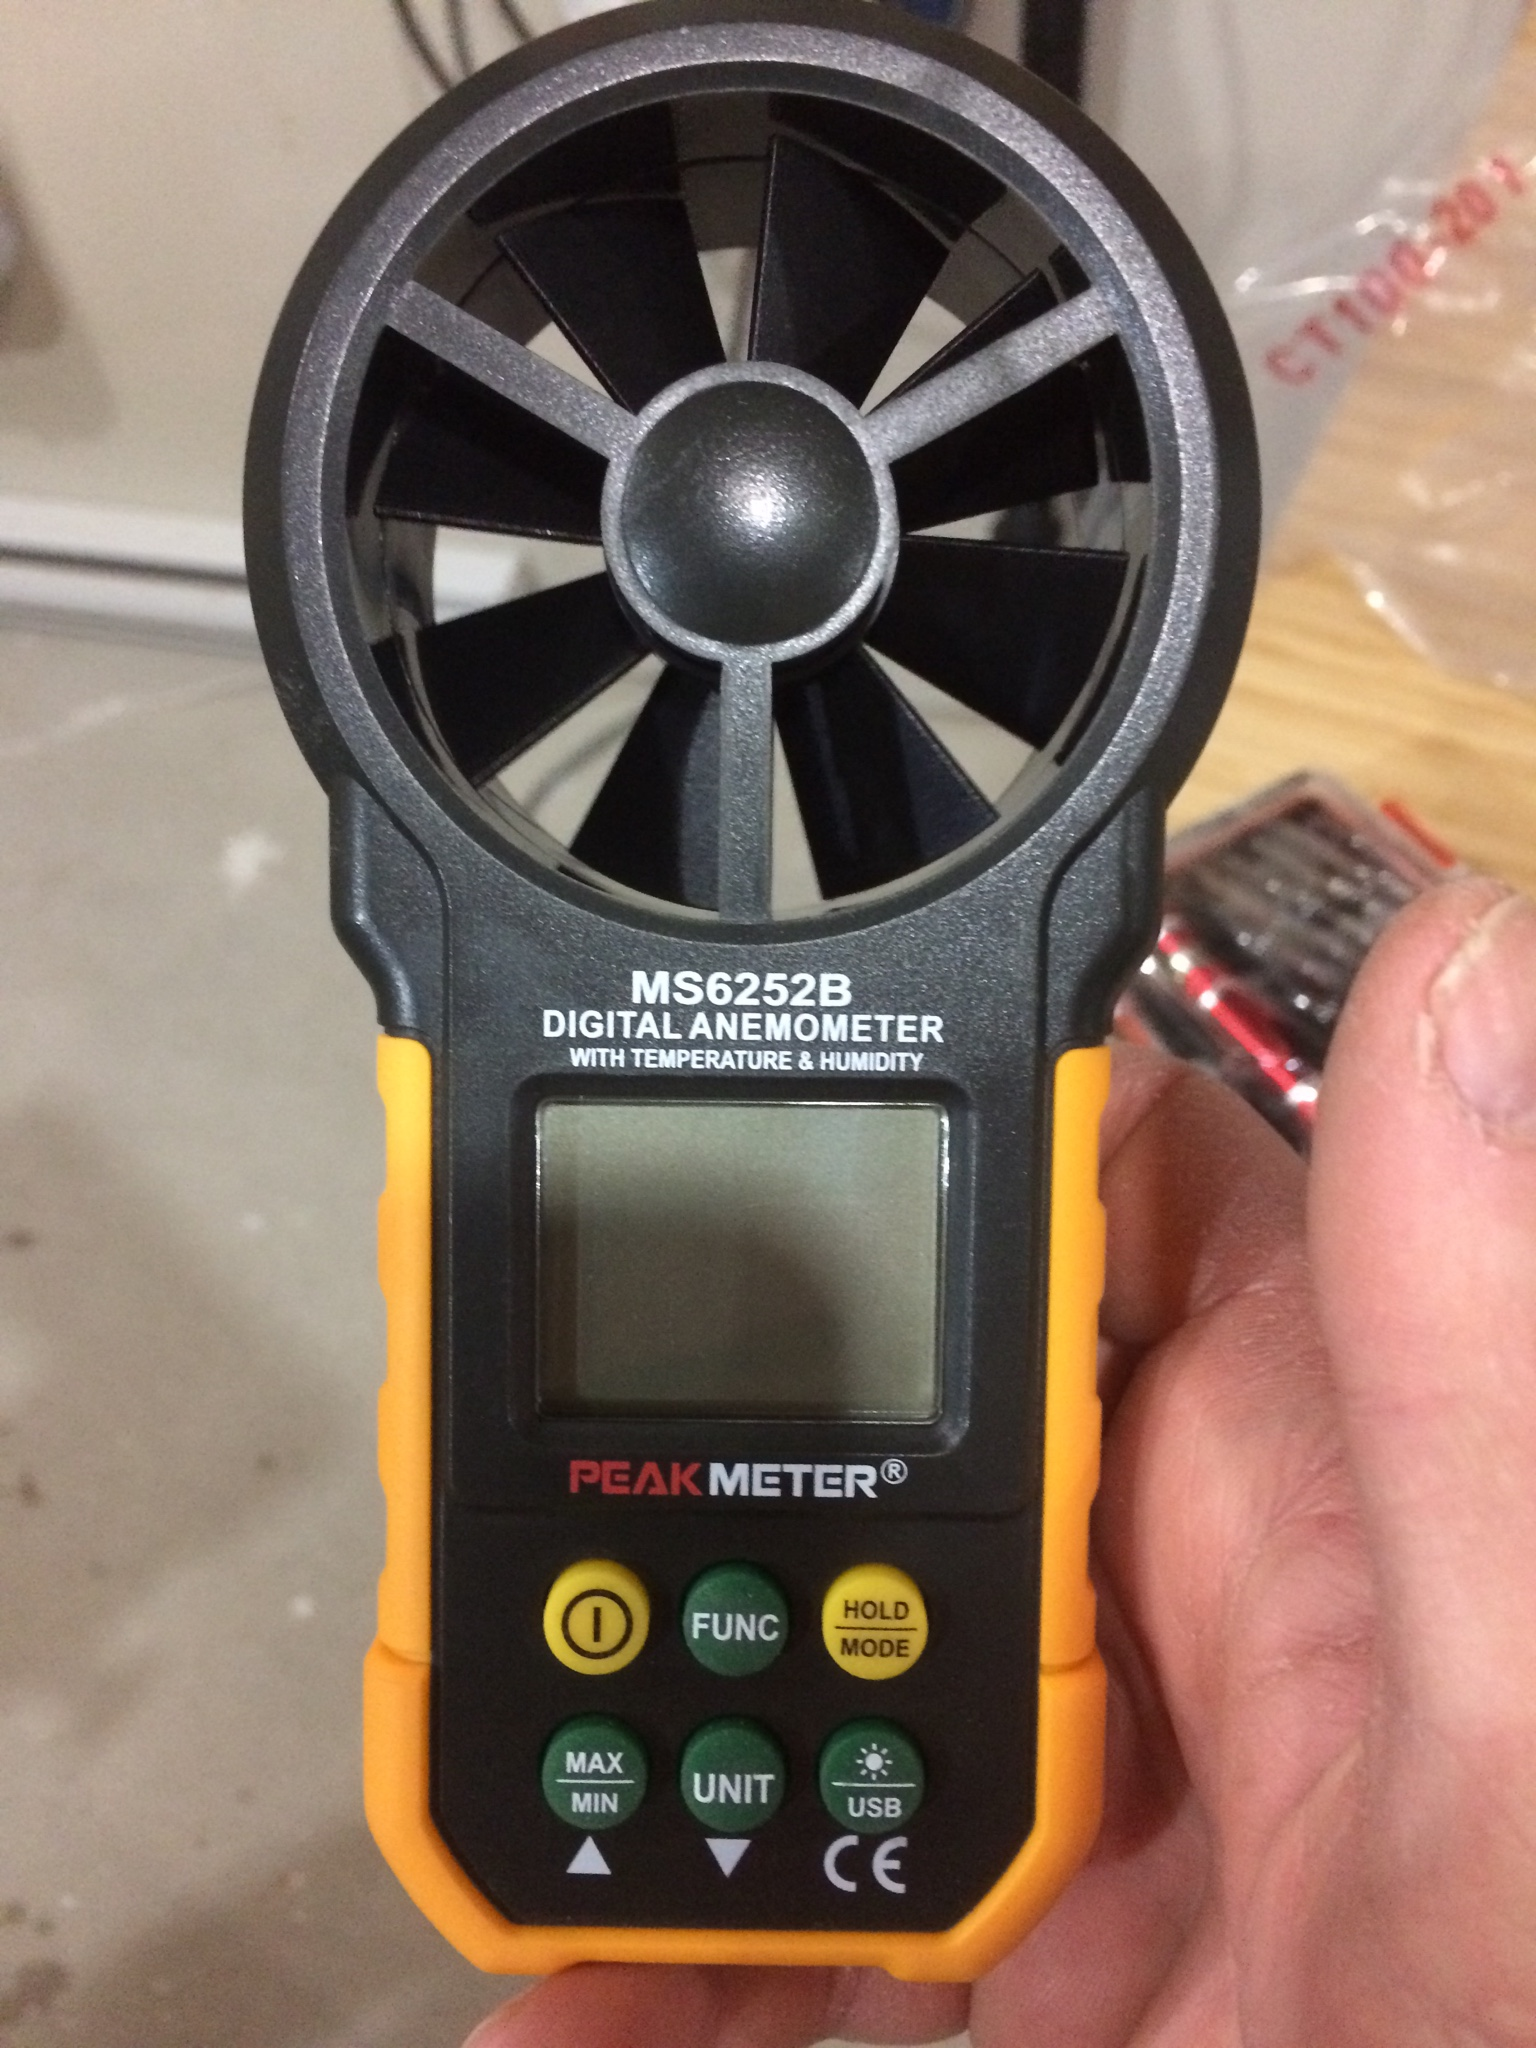 How to use my anemometer for cfm? - Canadian Woodworking and